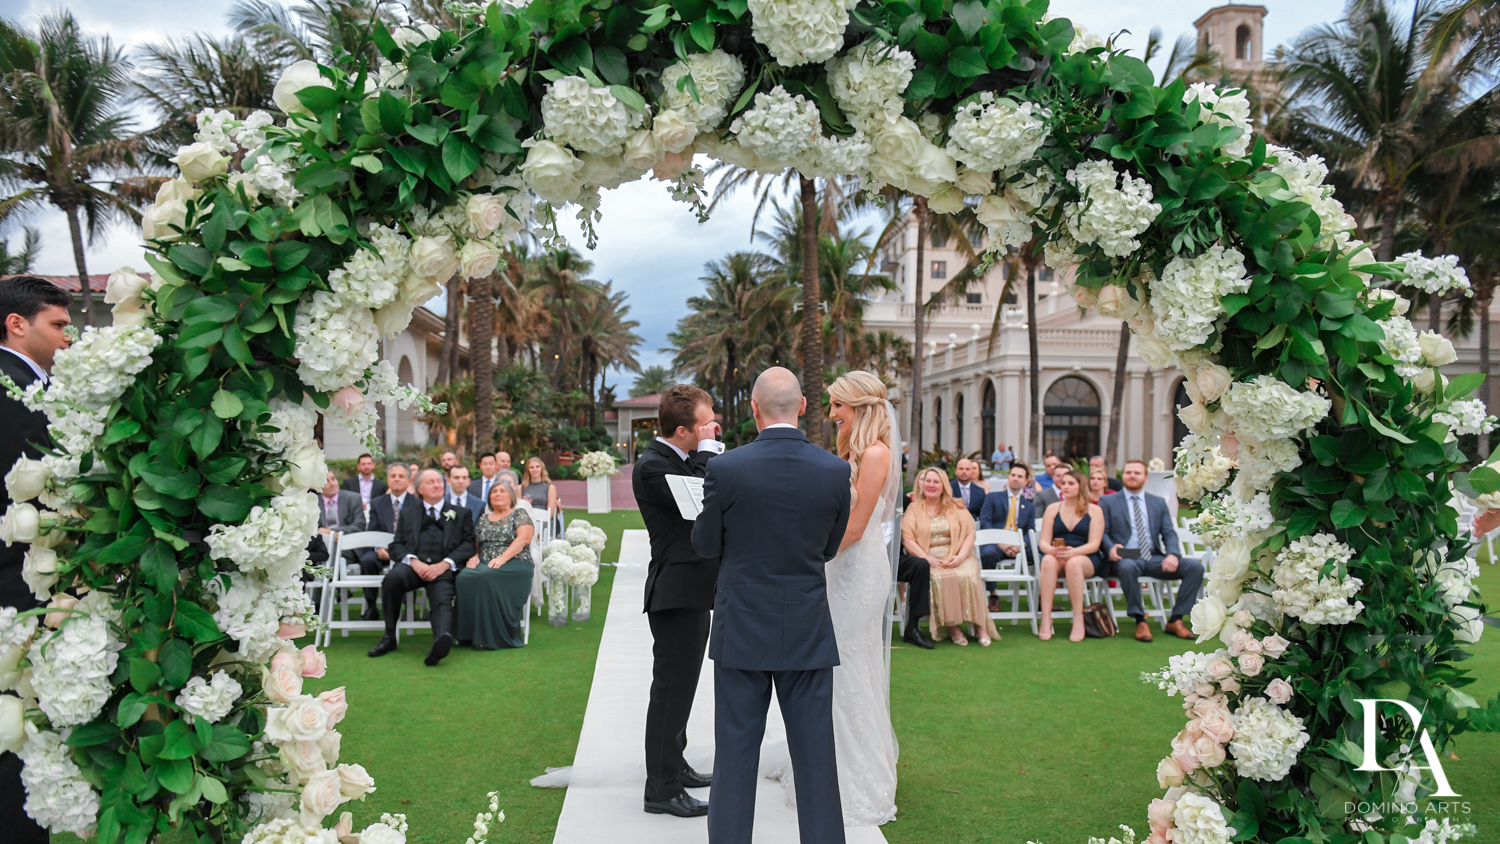 perfect wedding at Extravagant Wedding at The Breakers Palm Beach by Domino Arts Photography